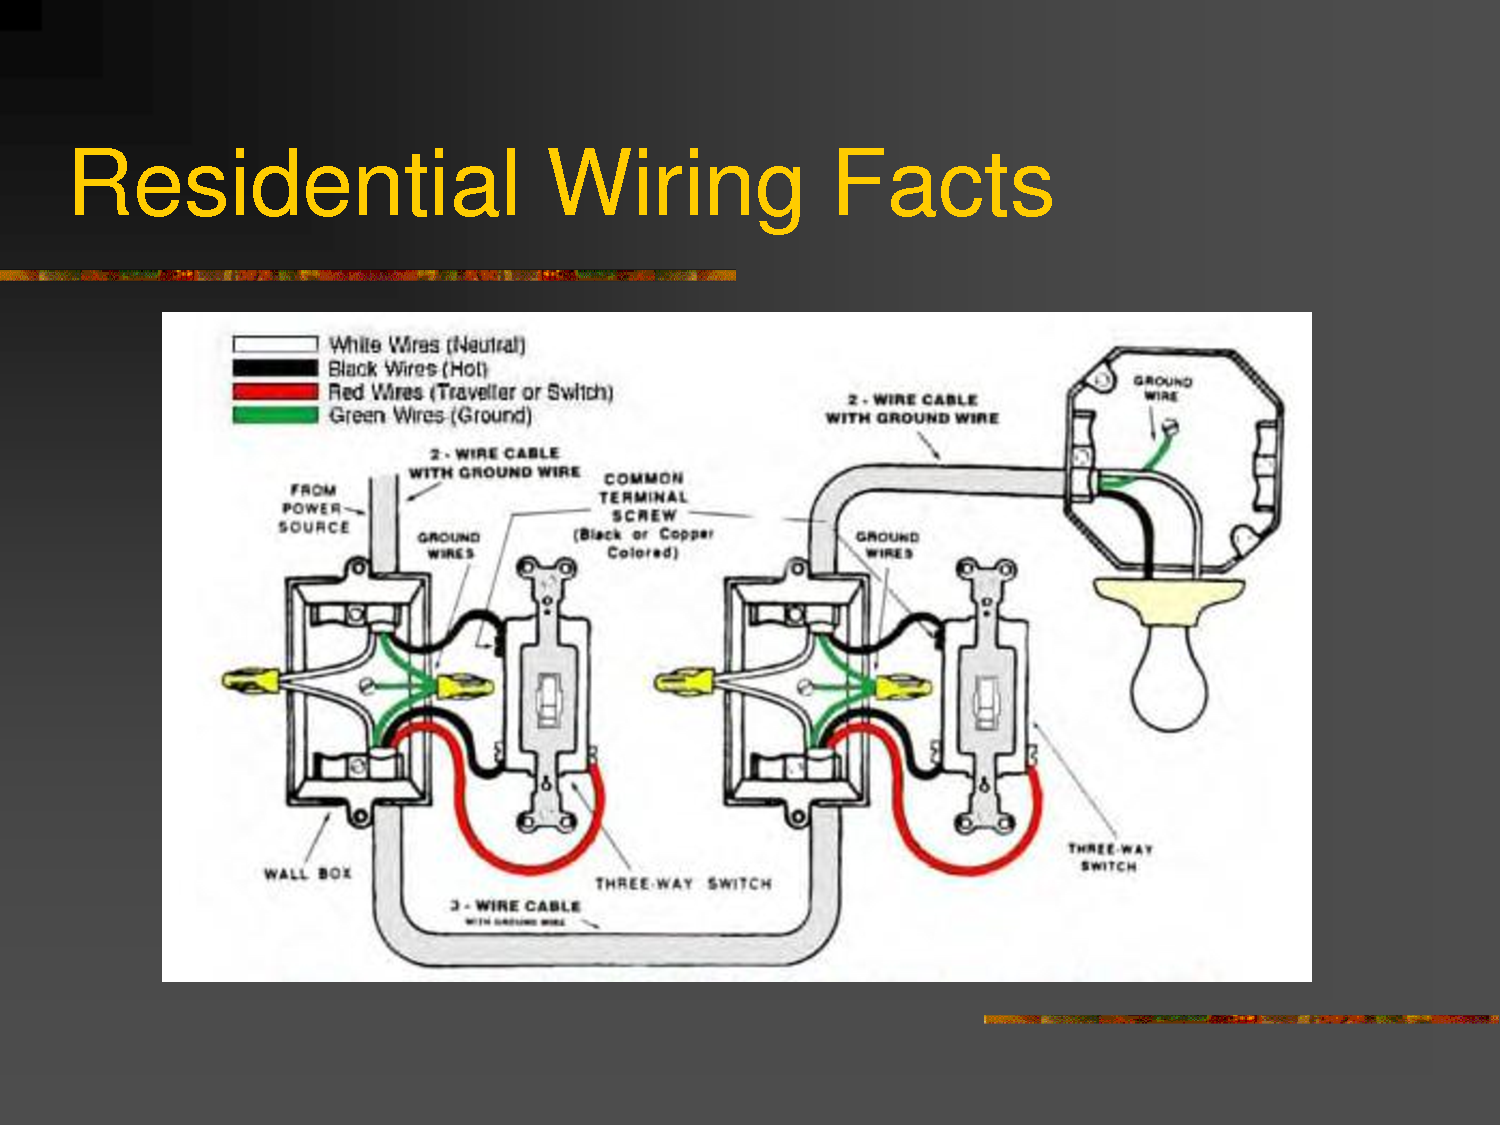 hight resolution of residential wiring diagrams wiring diagram name residential wiring diagram examples 4 best images of residential wiring